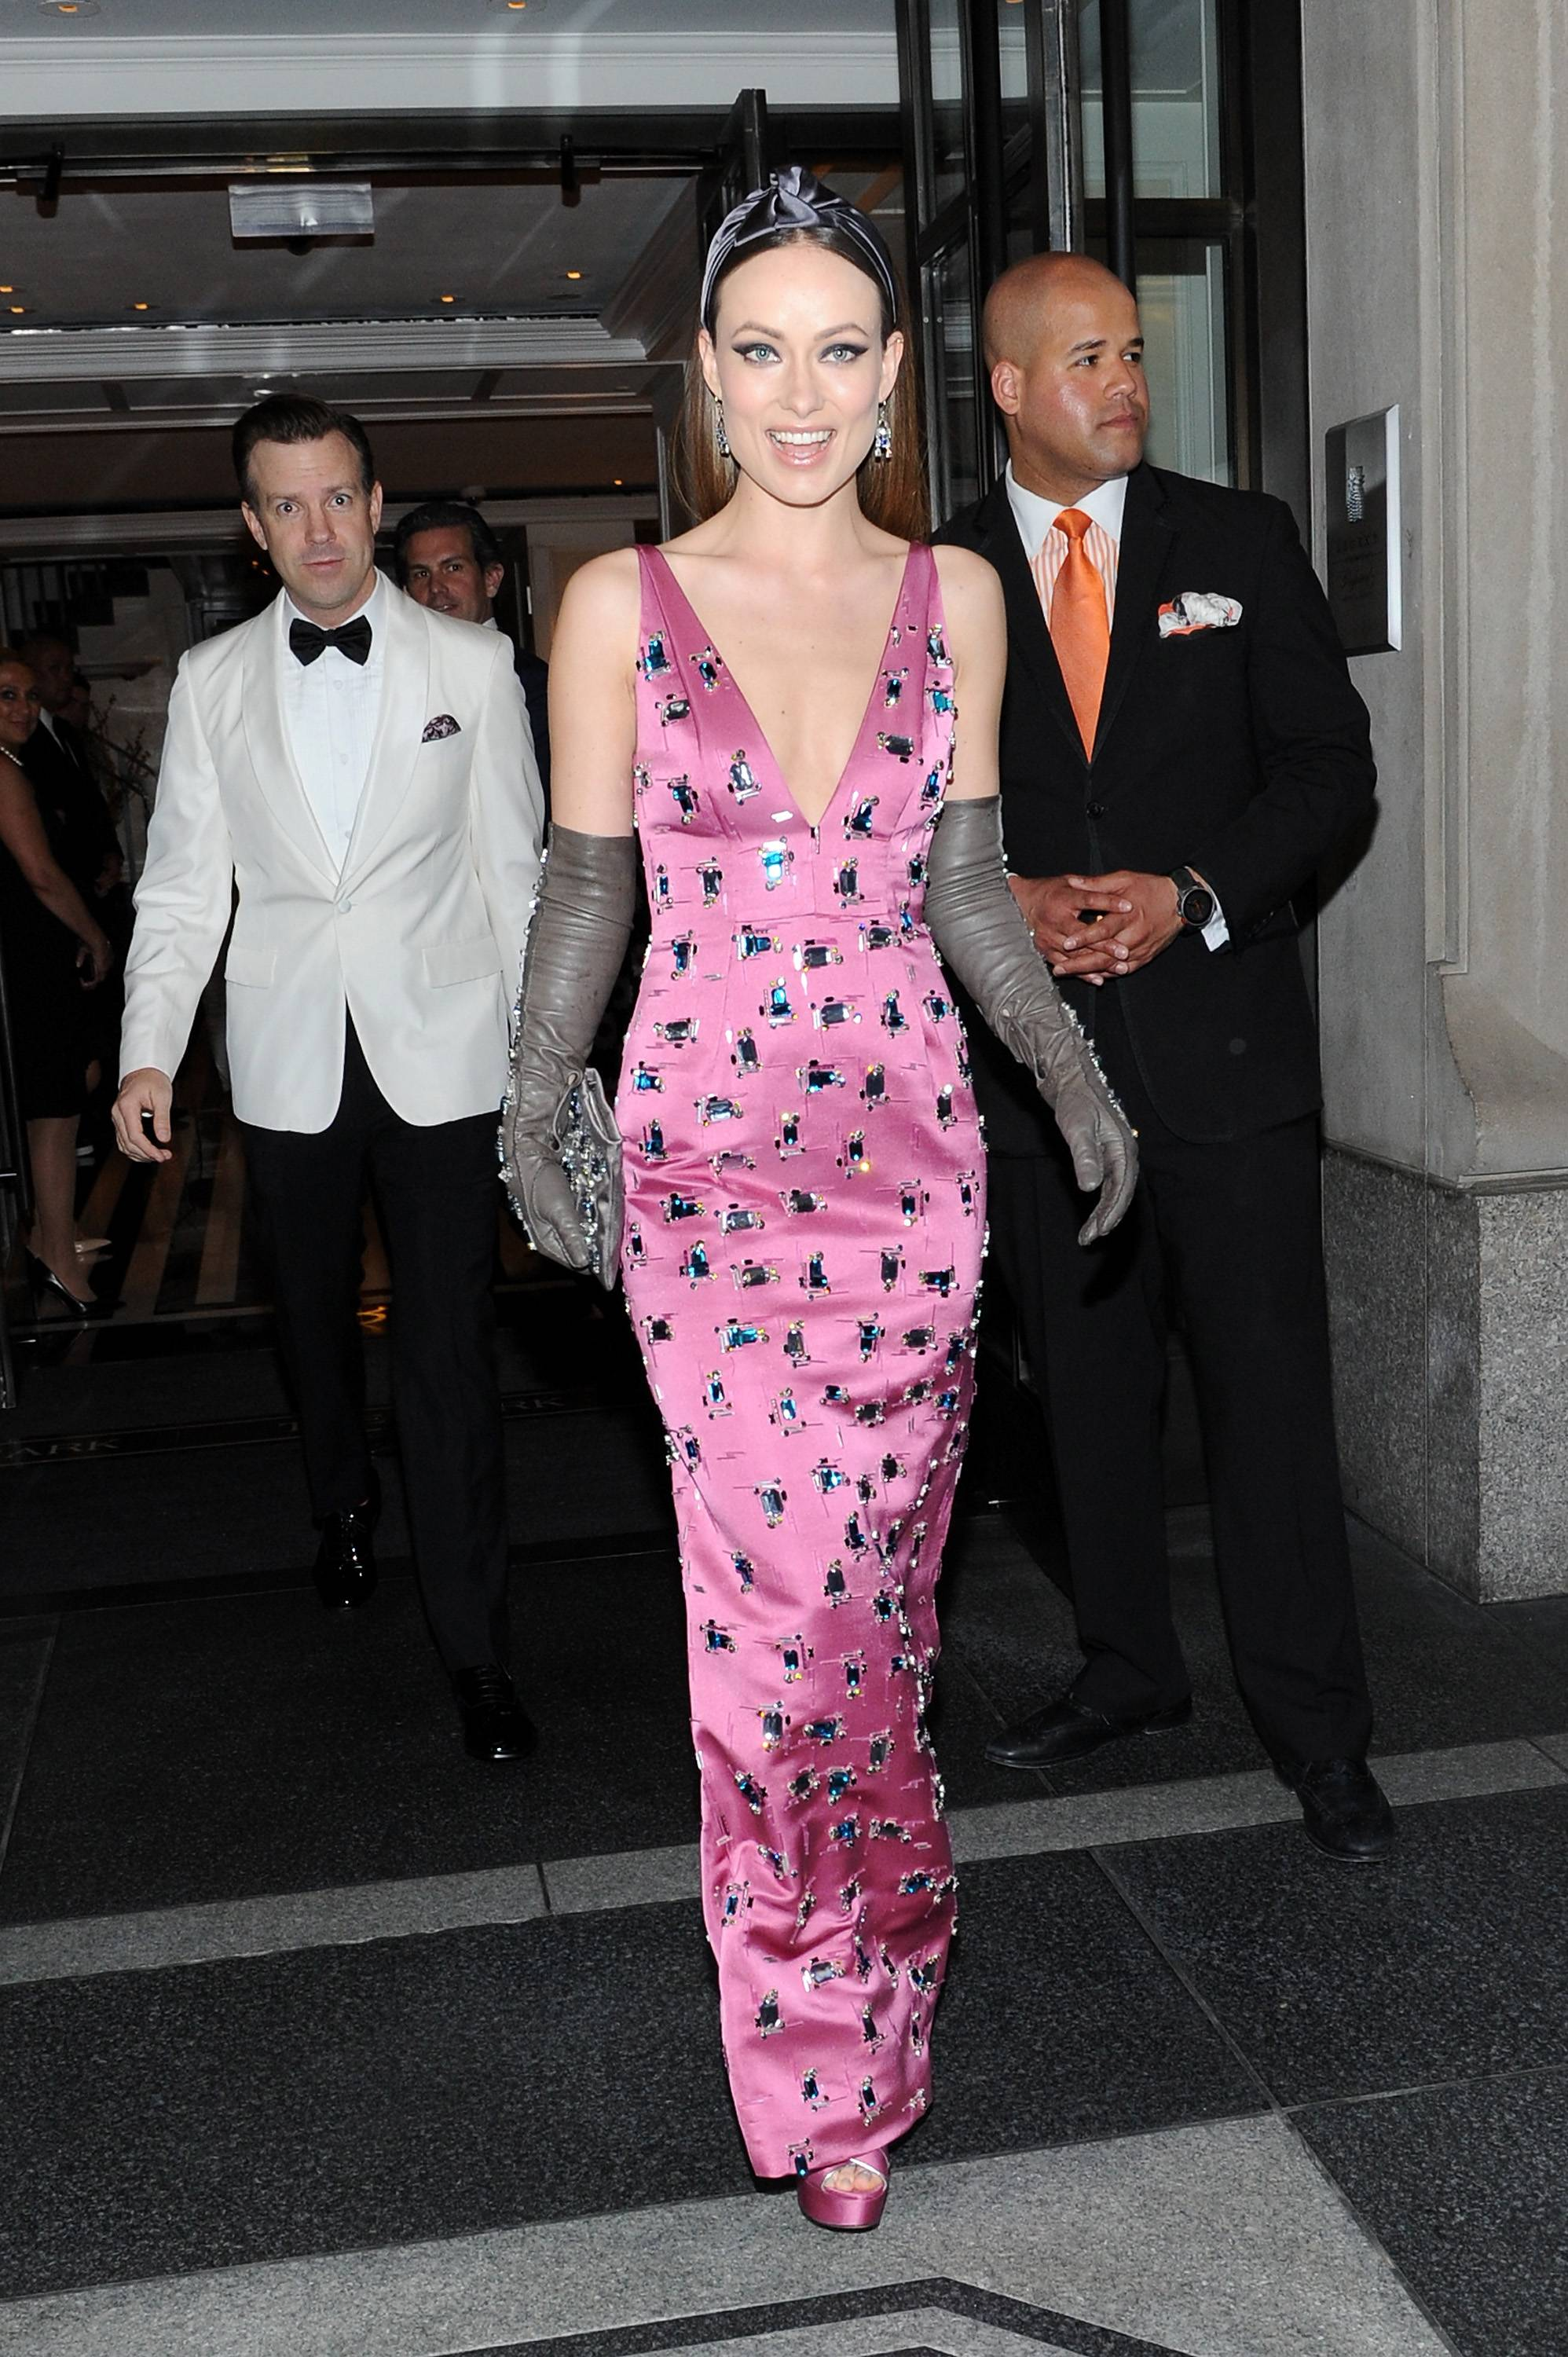 NEW YORK, NY - MAY 04: Olivia Wilde (R) and Jason Sudeikis depart The Mark Hotel for the Met Gala at the Metropolitan Museum of Art on May 4, 2015 in New York City.  (Photo by Andrew Toth/Getty Images for The Mark Hotel)